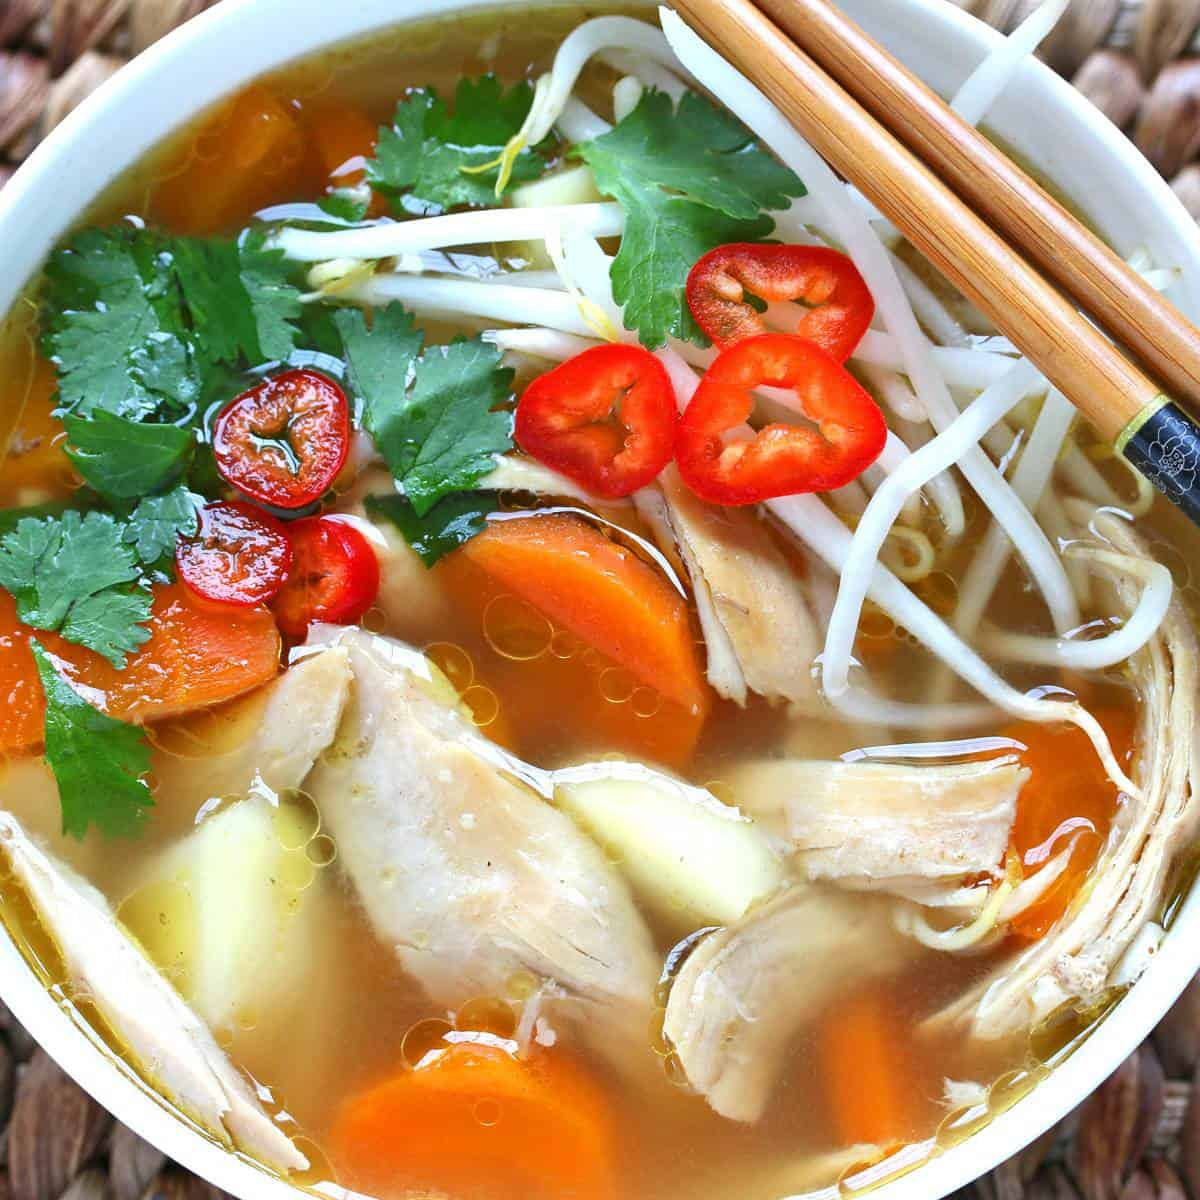 Asian chicken soup recipe Chinese Indonesian Thai vegetables spices spiced lemongrass healthy gluten free